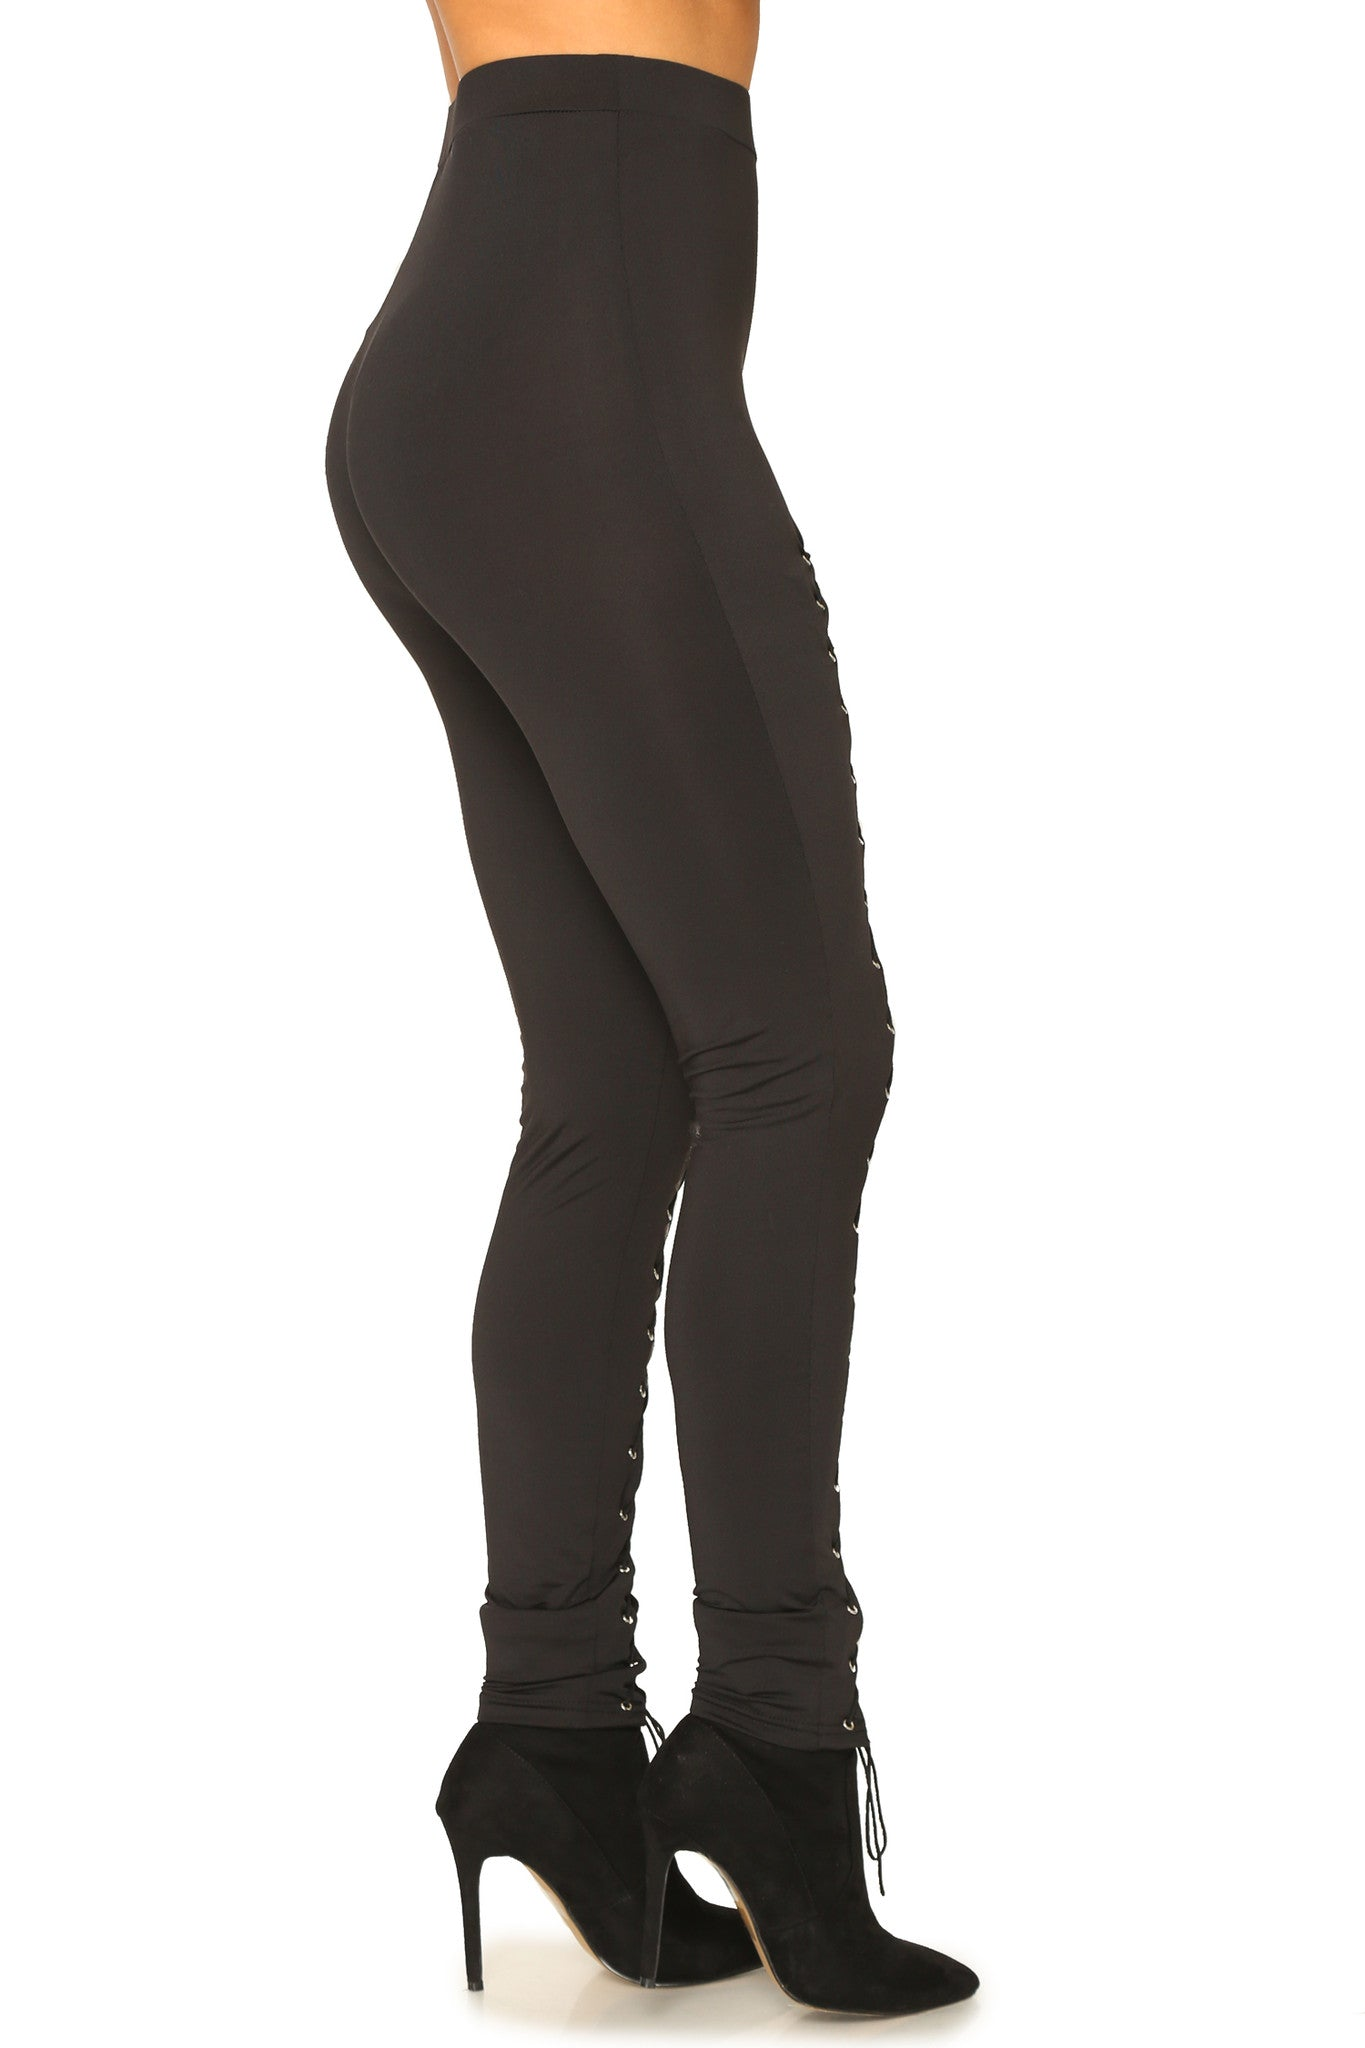 LACE ME UP LEGGINGS - Glam Envy - 2